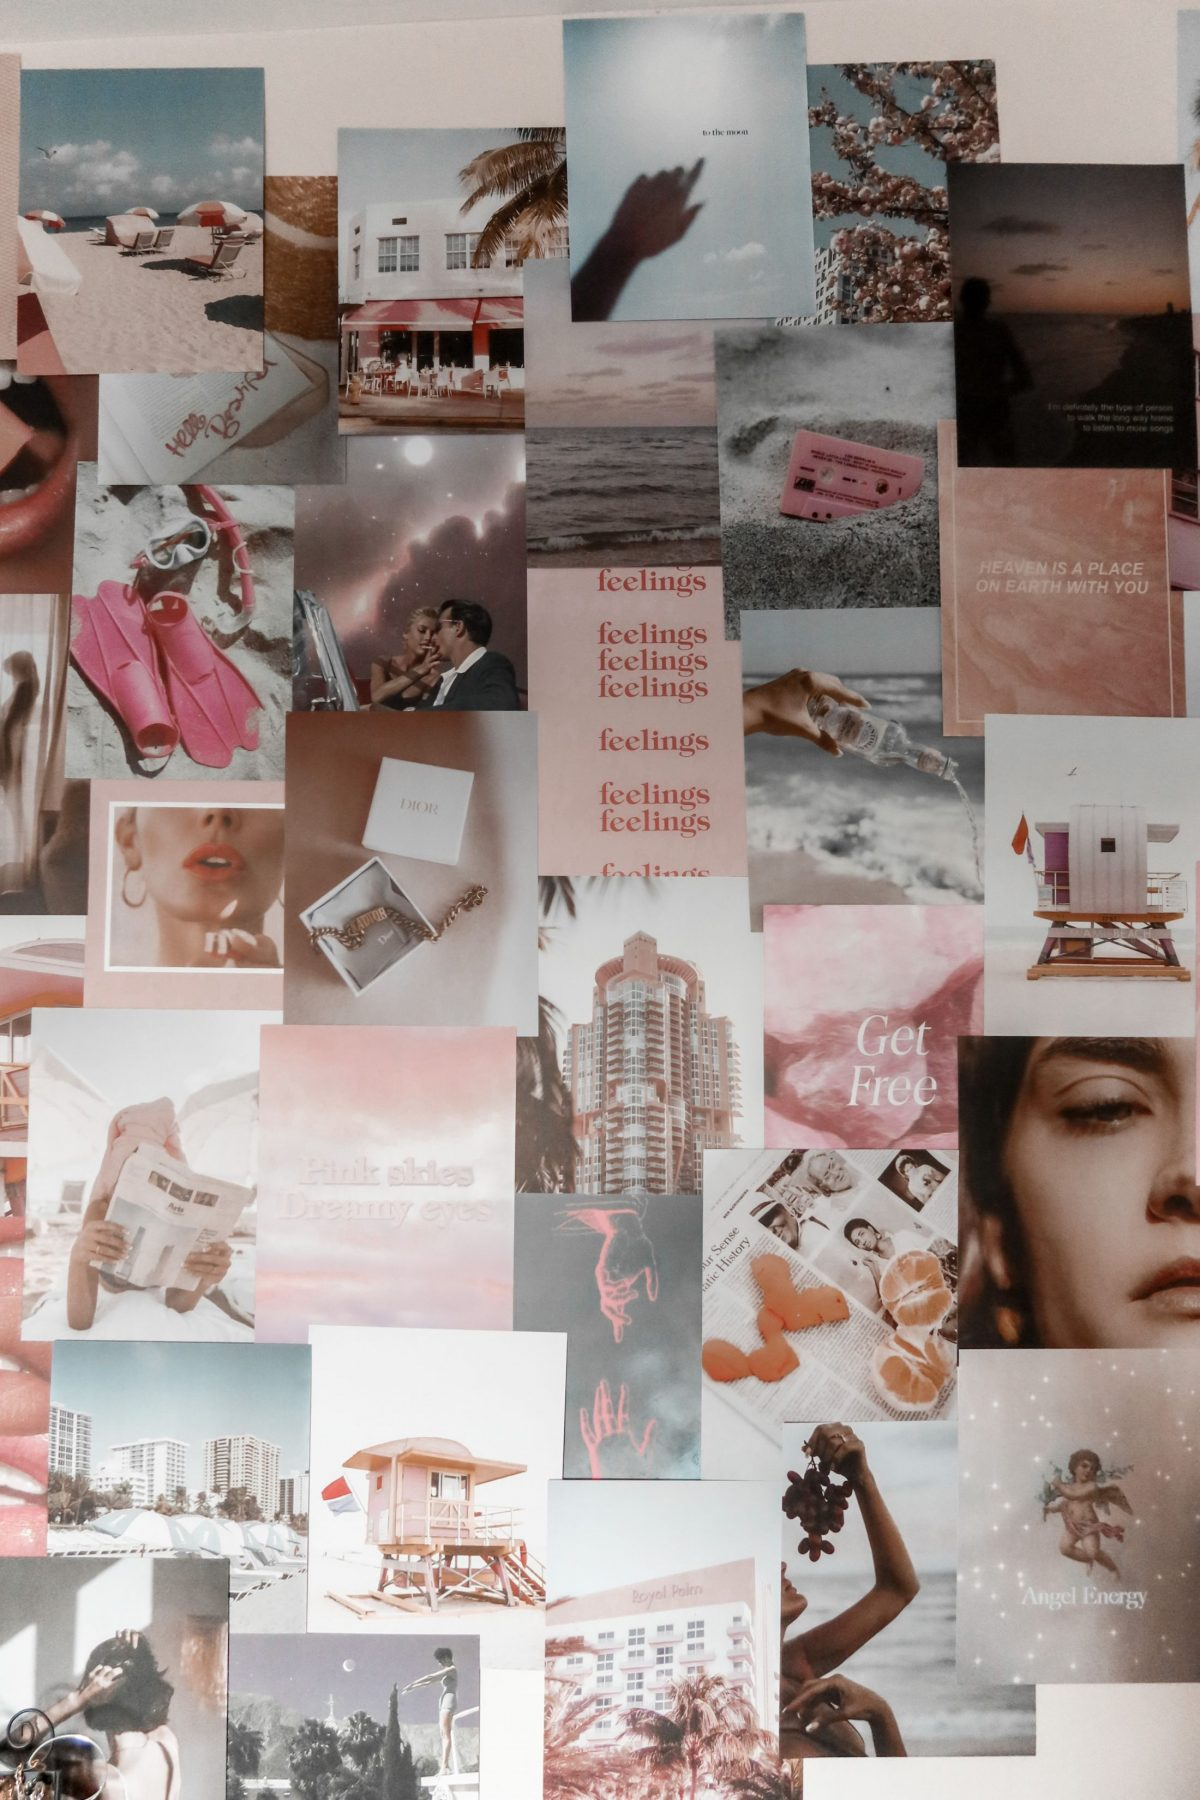 This is an image of a collage wall using the pink Tezza collage kit, to decorate an office wall.